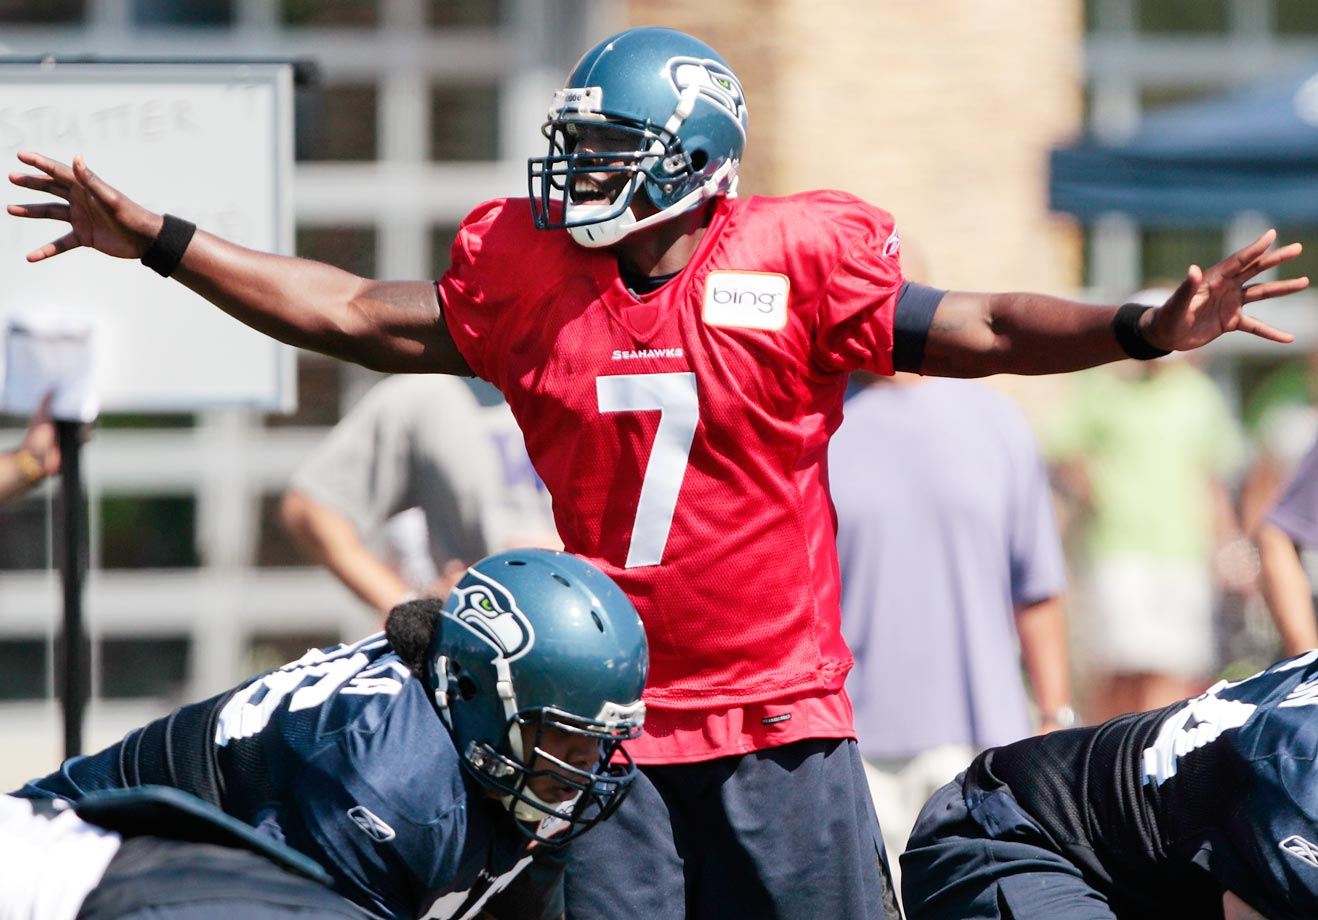 Tarvaris Jackson closed out his time in Seattle with 3,091 yards and 14 touchdowns in 2011, but the dual acquisitions of Matt Flynn as a free agent and Russell Wilson from the draft meant his future there was bleak. It wasn't much better in Buffalo, where he didn't see the field once in 2012 as the Bills' third-string QB. Buffalo released him in June 2013.